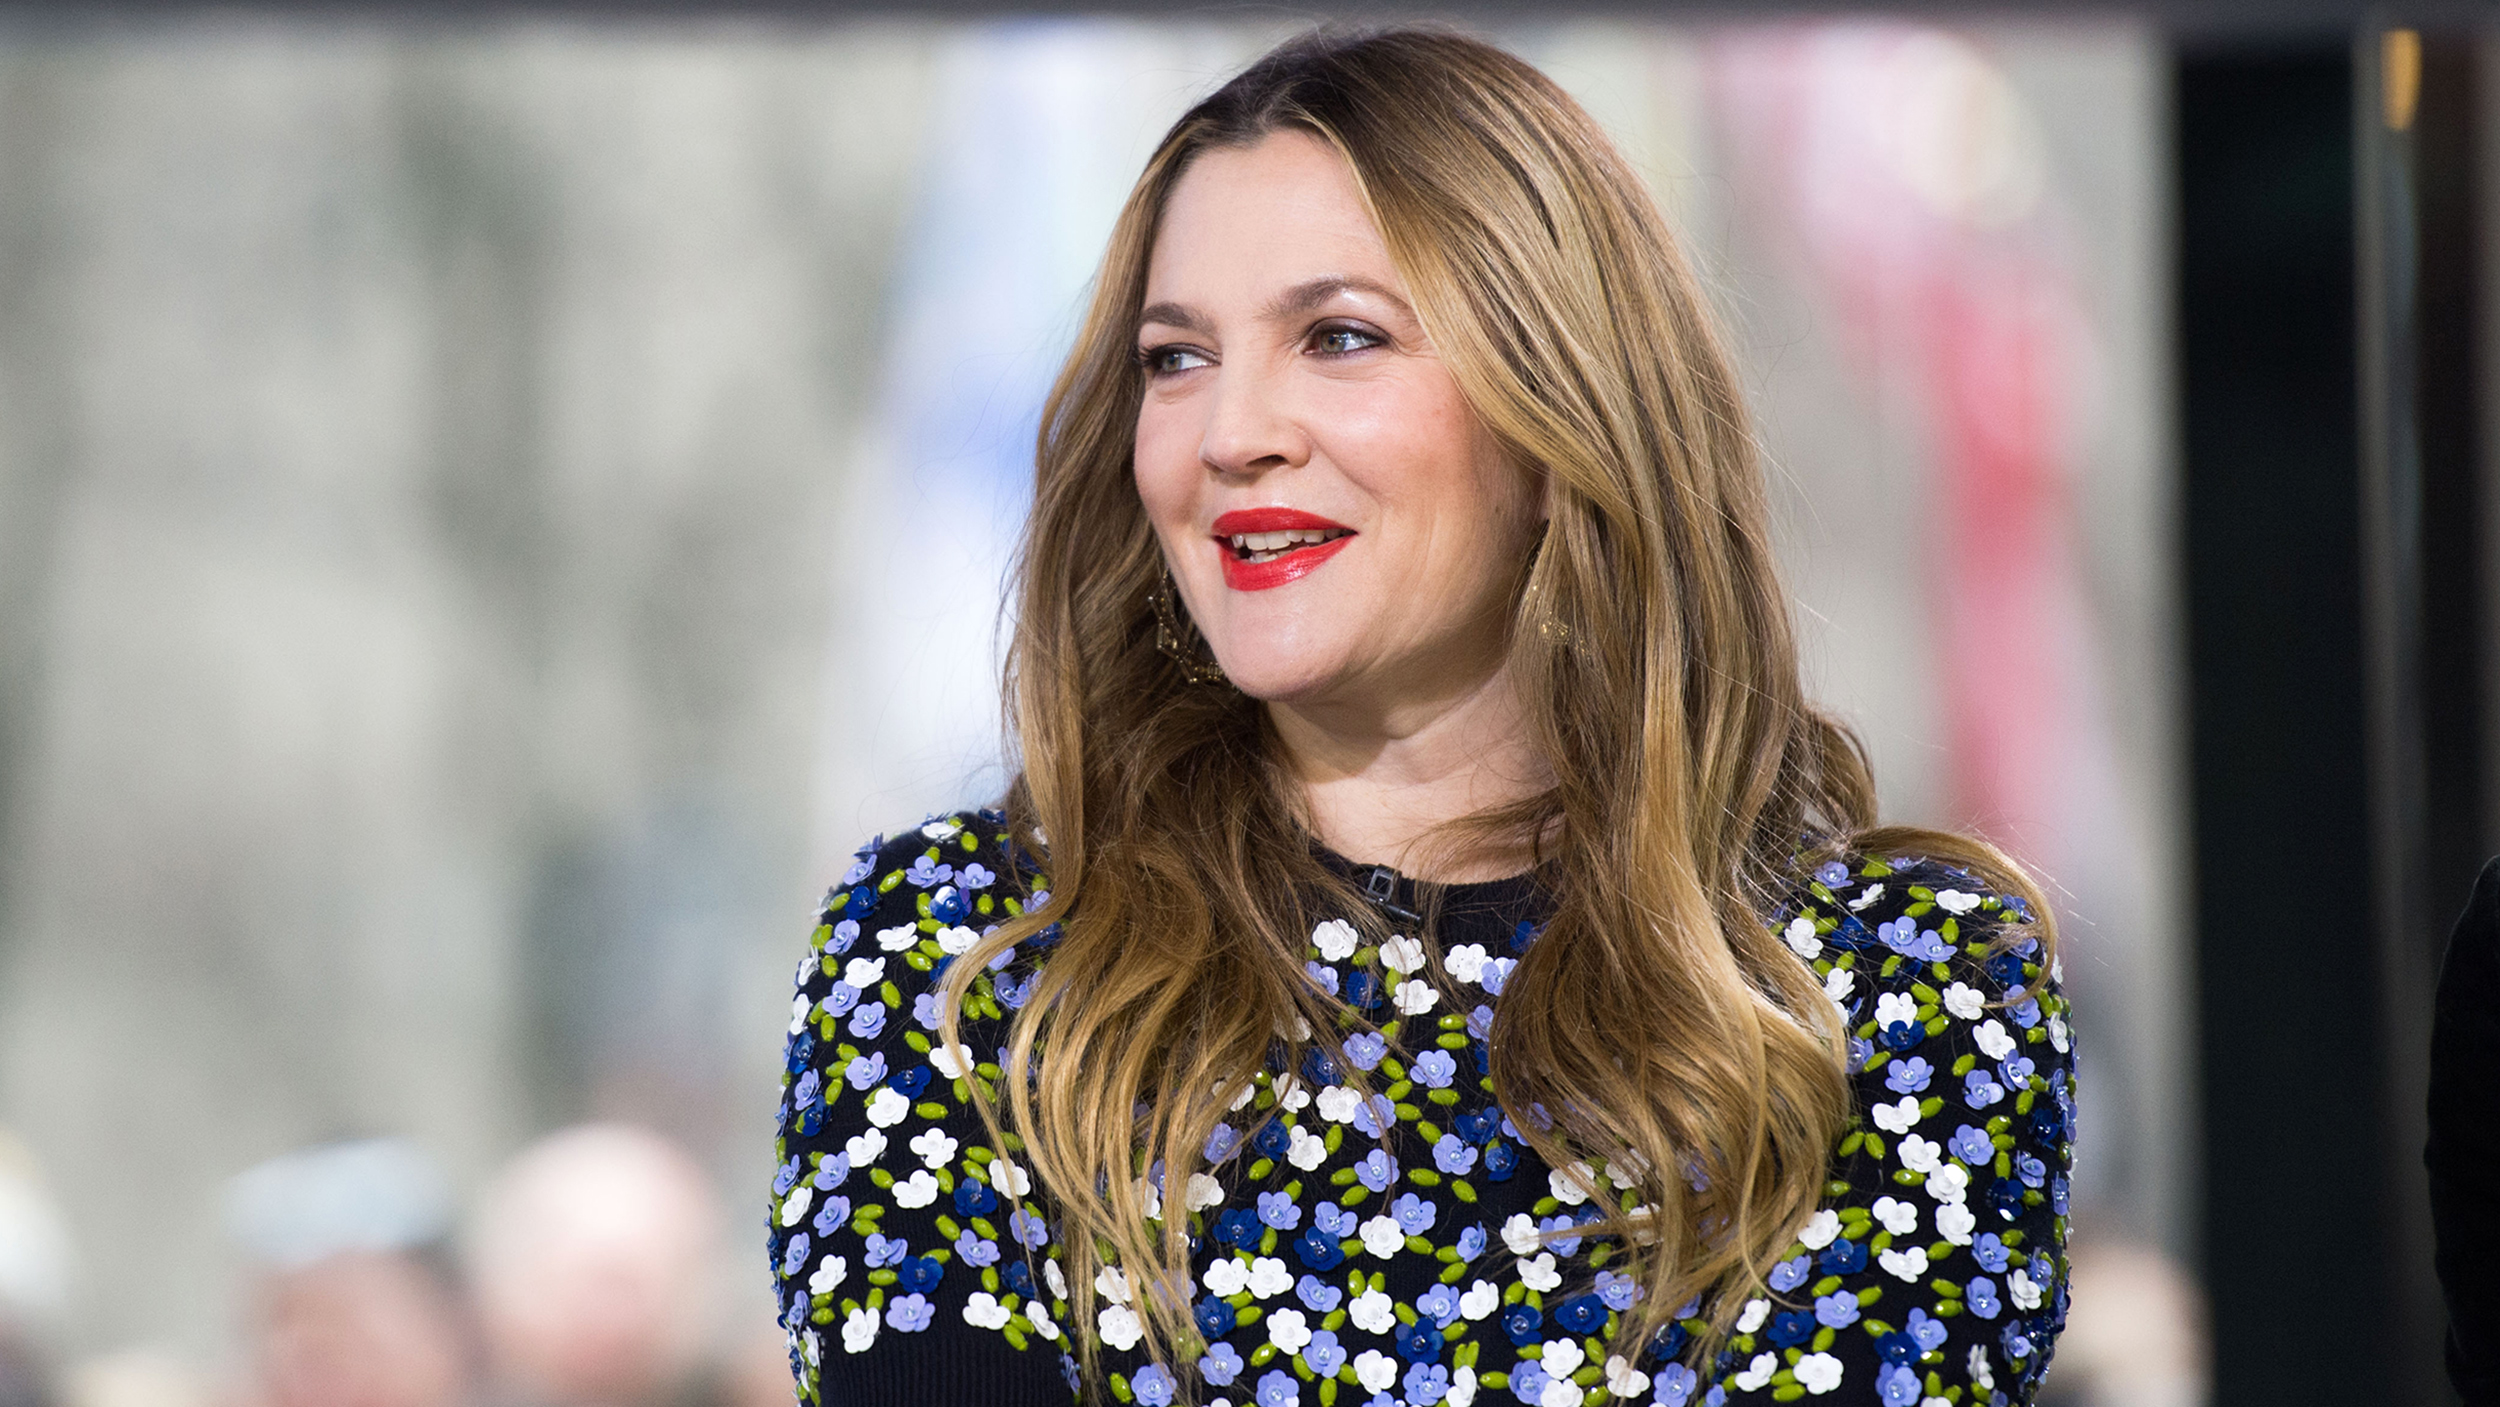 'I had let myself go': Drew Barrymore talks losing 20 ... Drew Barrymore